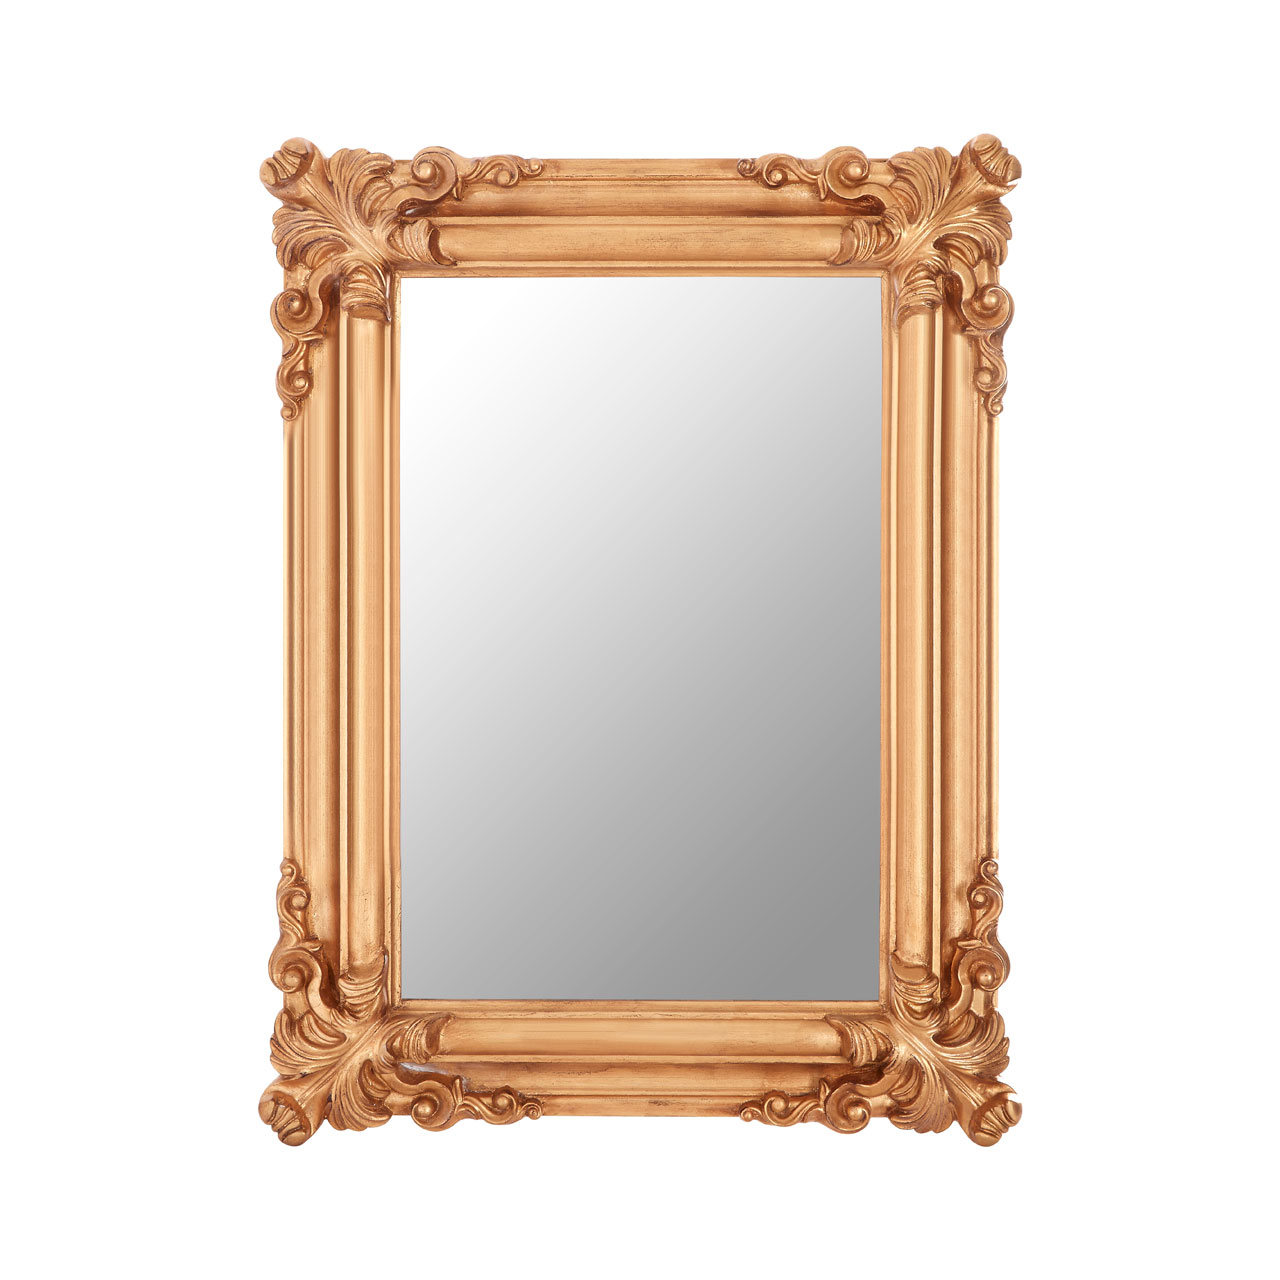 Details About Georgia Wall Mirror Polyresin & Wood Back Gold Frame Retro Vintage Style With Well Known Vintage Style Wall Mirrors (View 6 of 20)